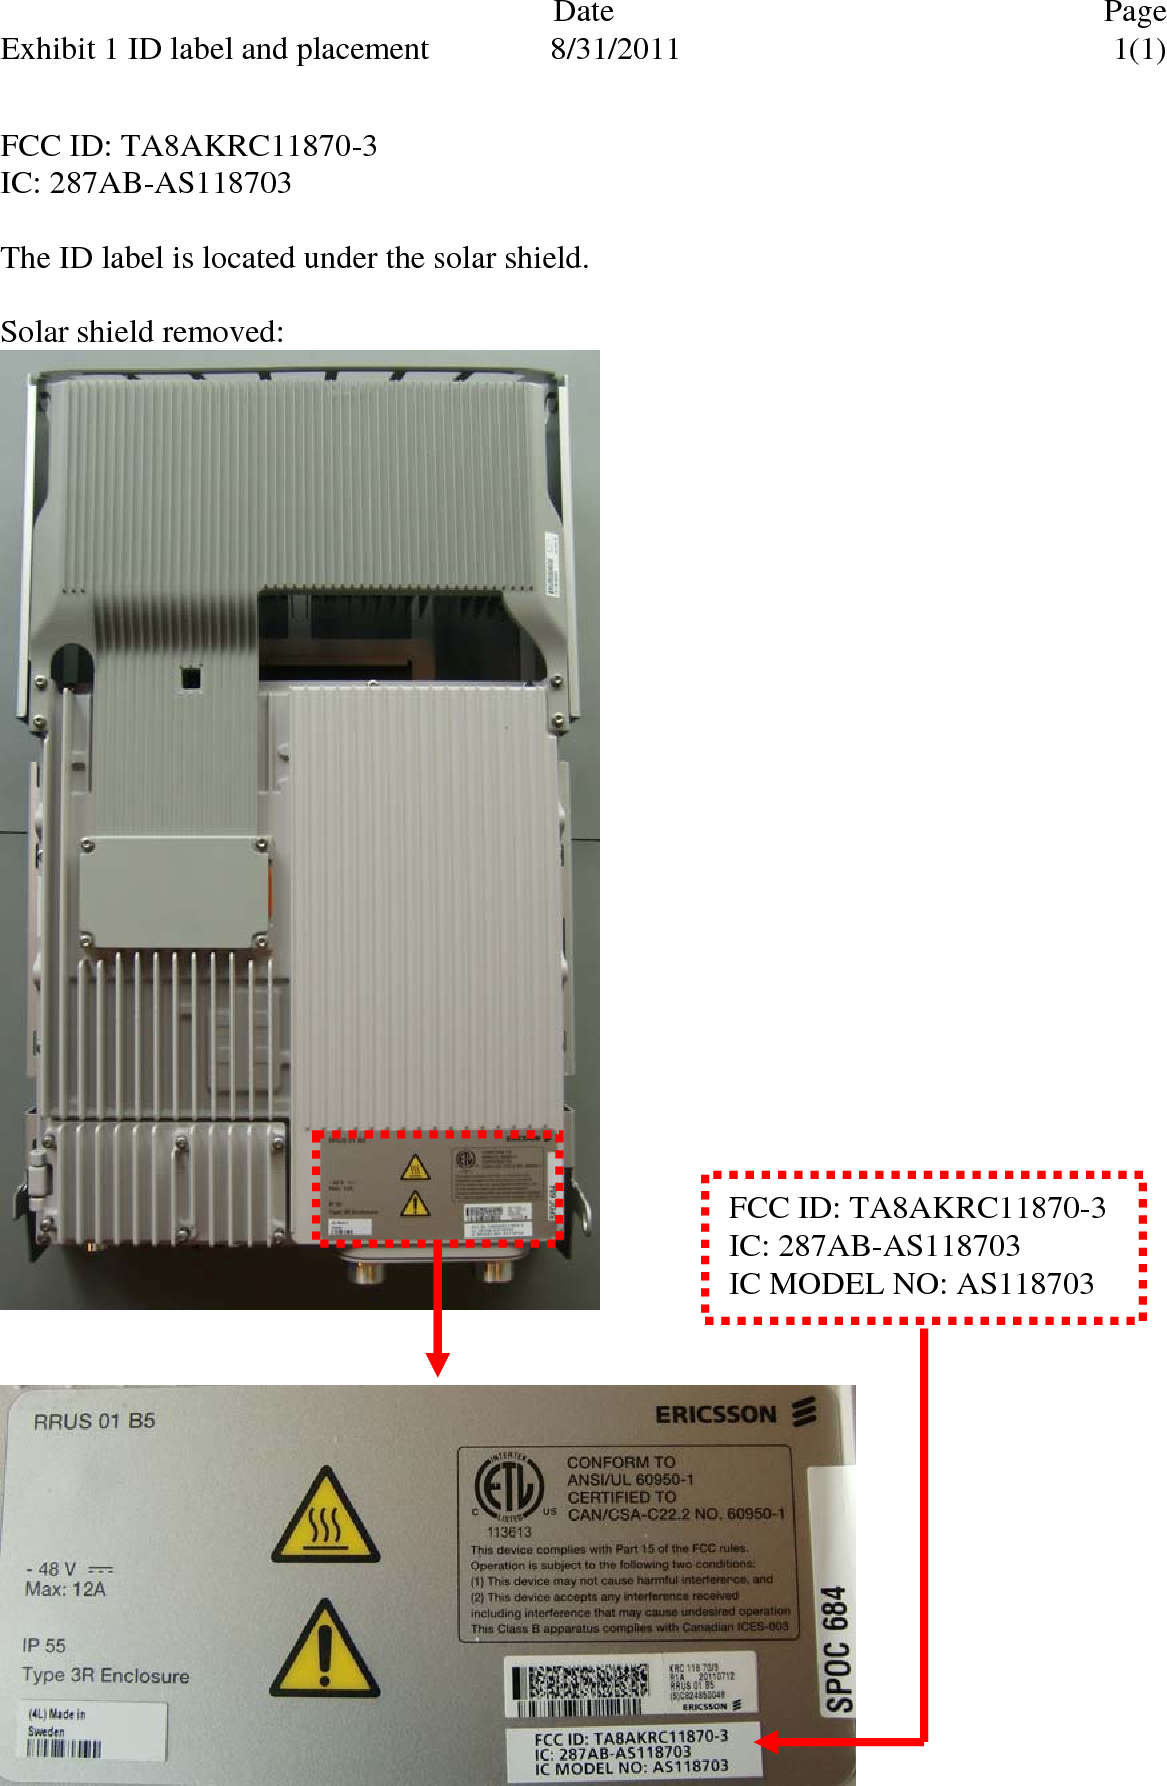 ERIC-A Ericsson AB 850 MHz GSM, WCDMA and LTE Base Station